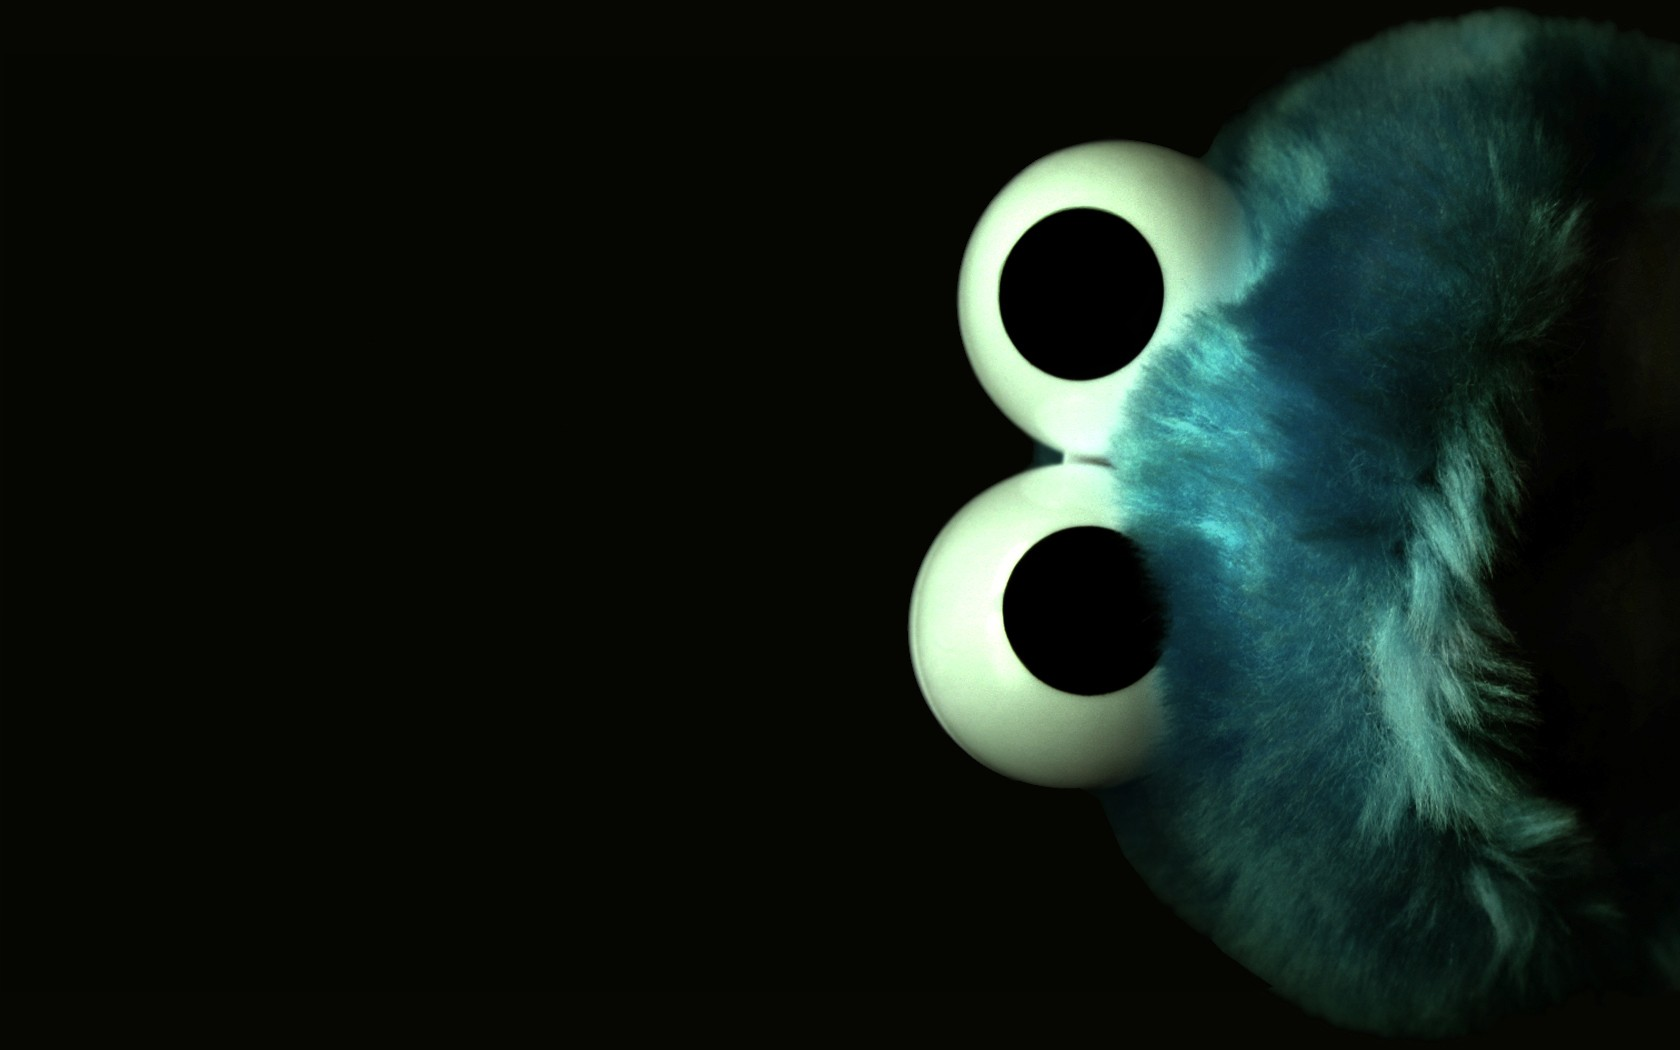 Stitch Cute Wallpaper For Computer Black Anime Cookie Monster Wallpapers Hd Desktop And